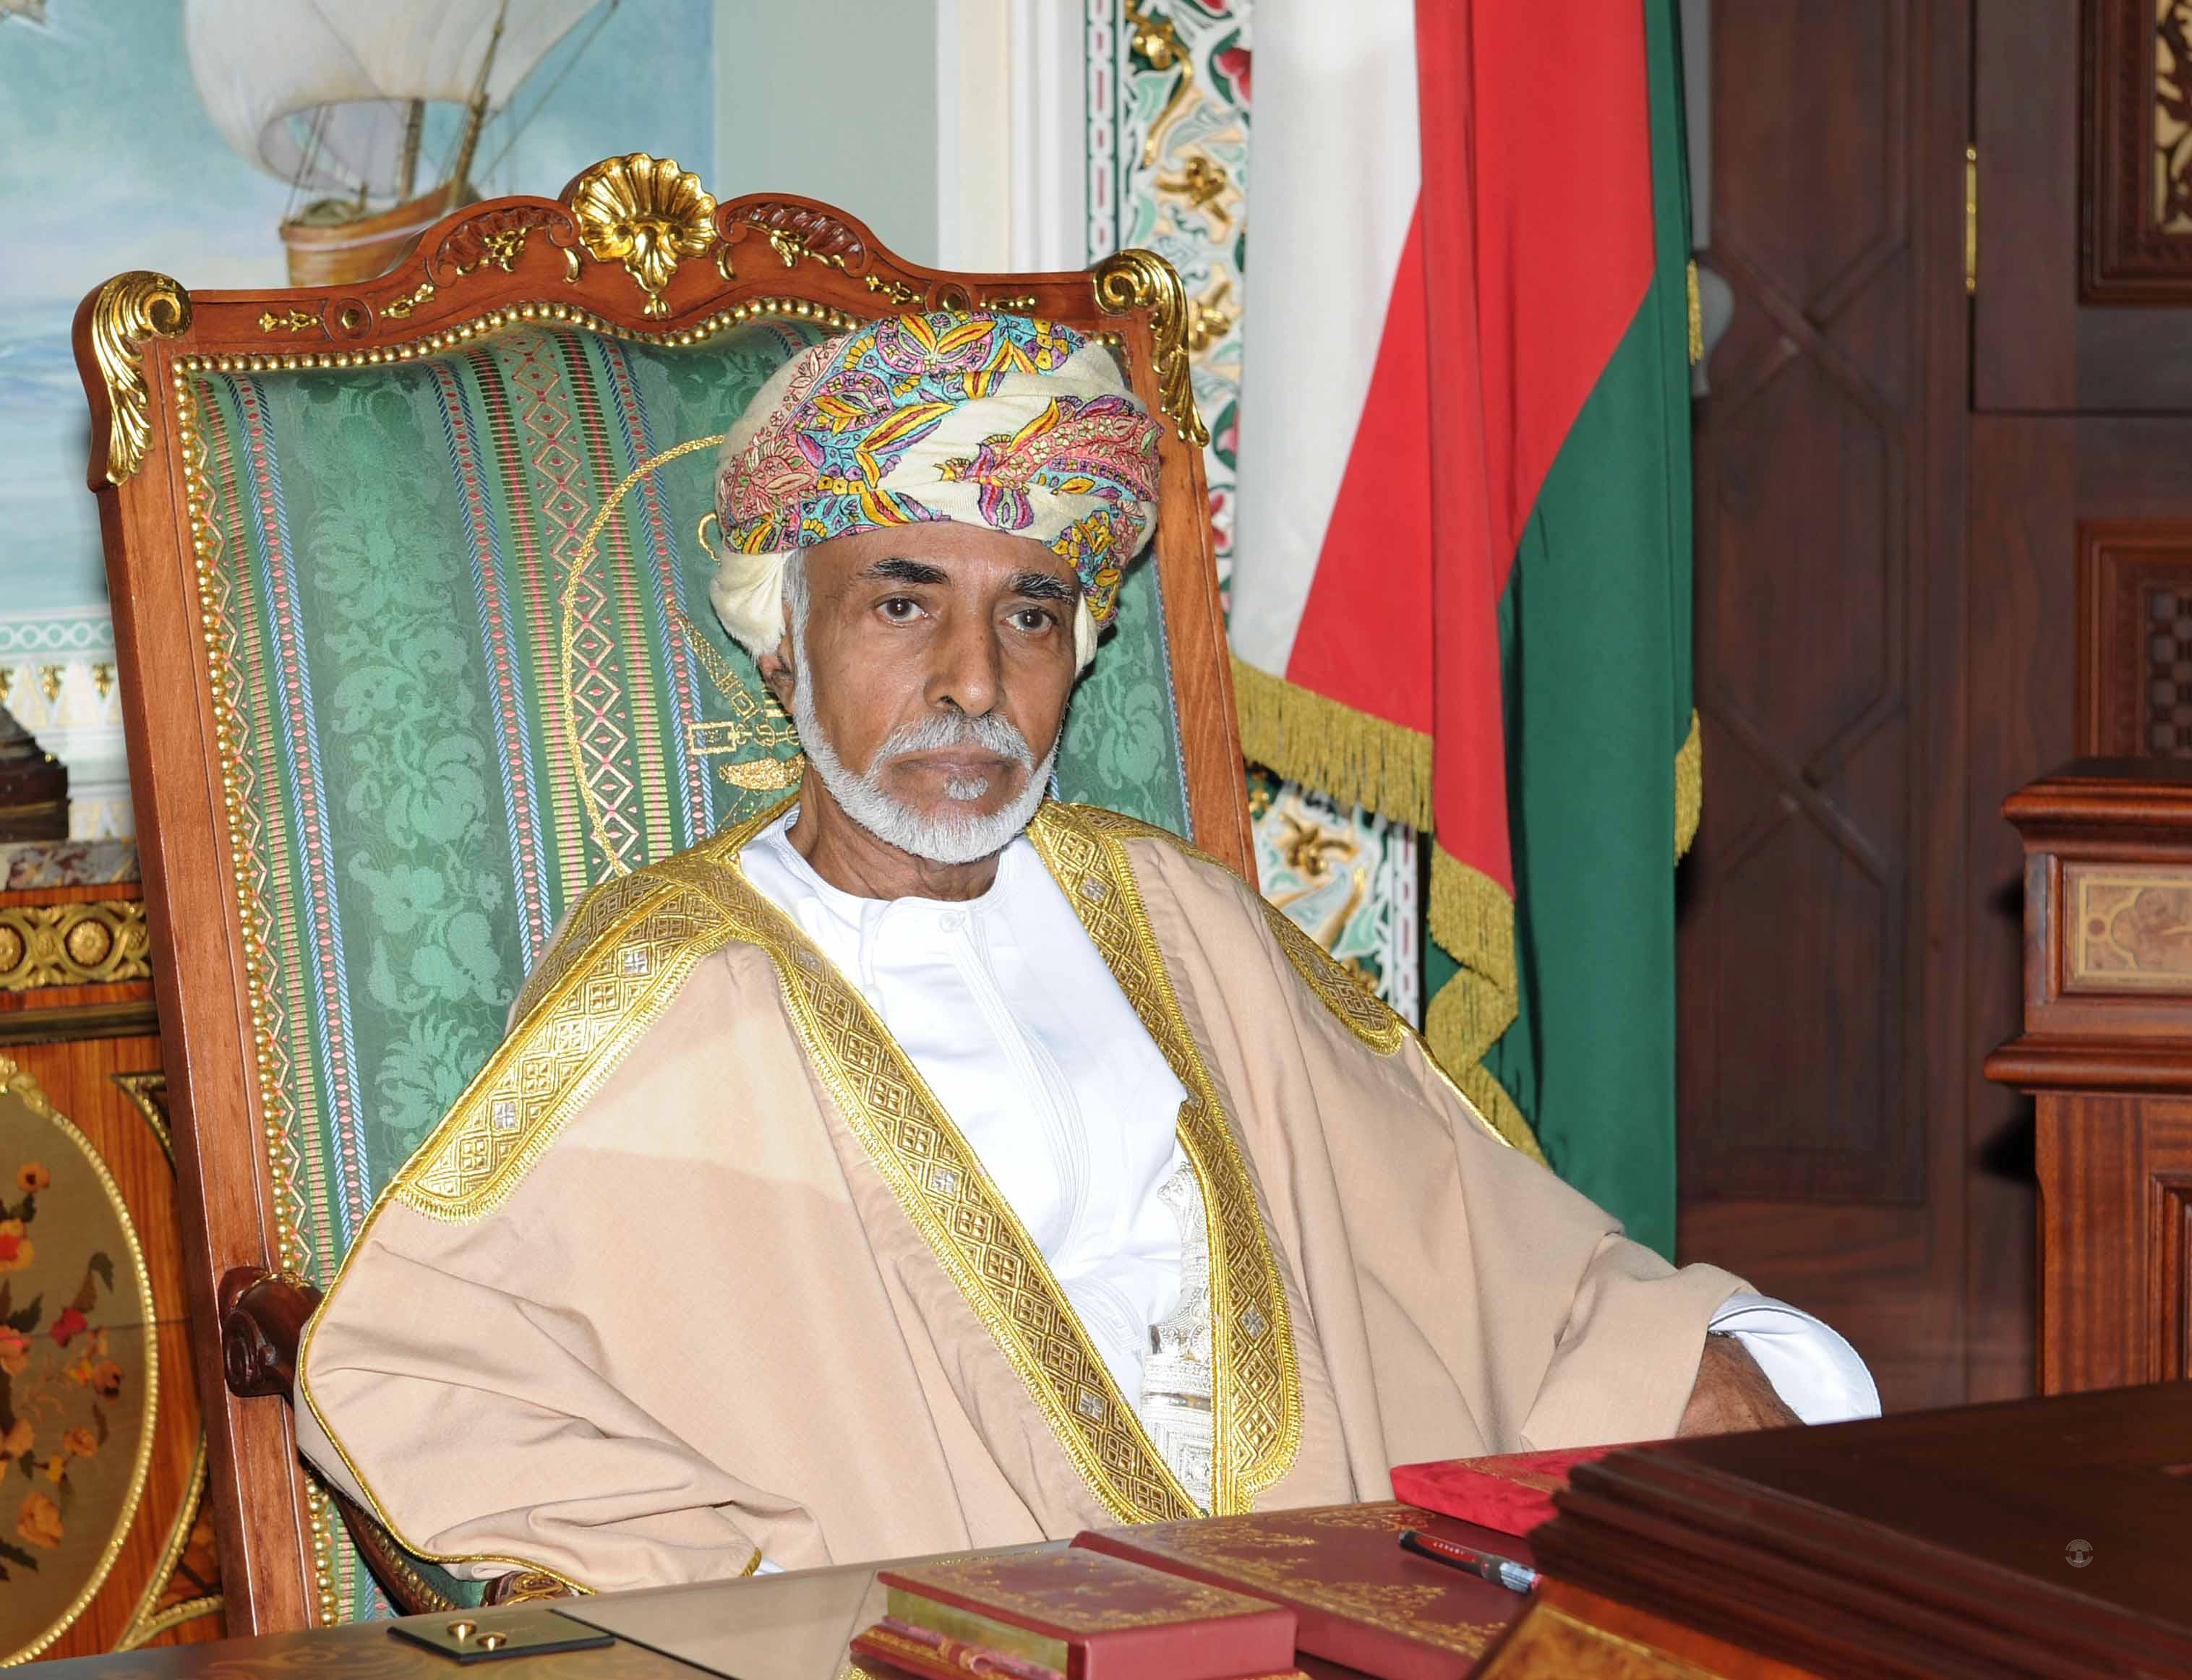 His Majesty Sultan Qaboos sends greetings to Norway